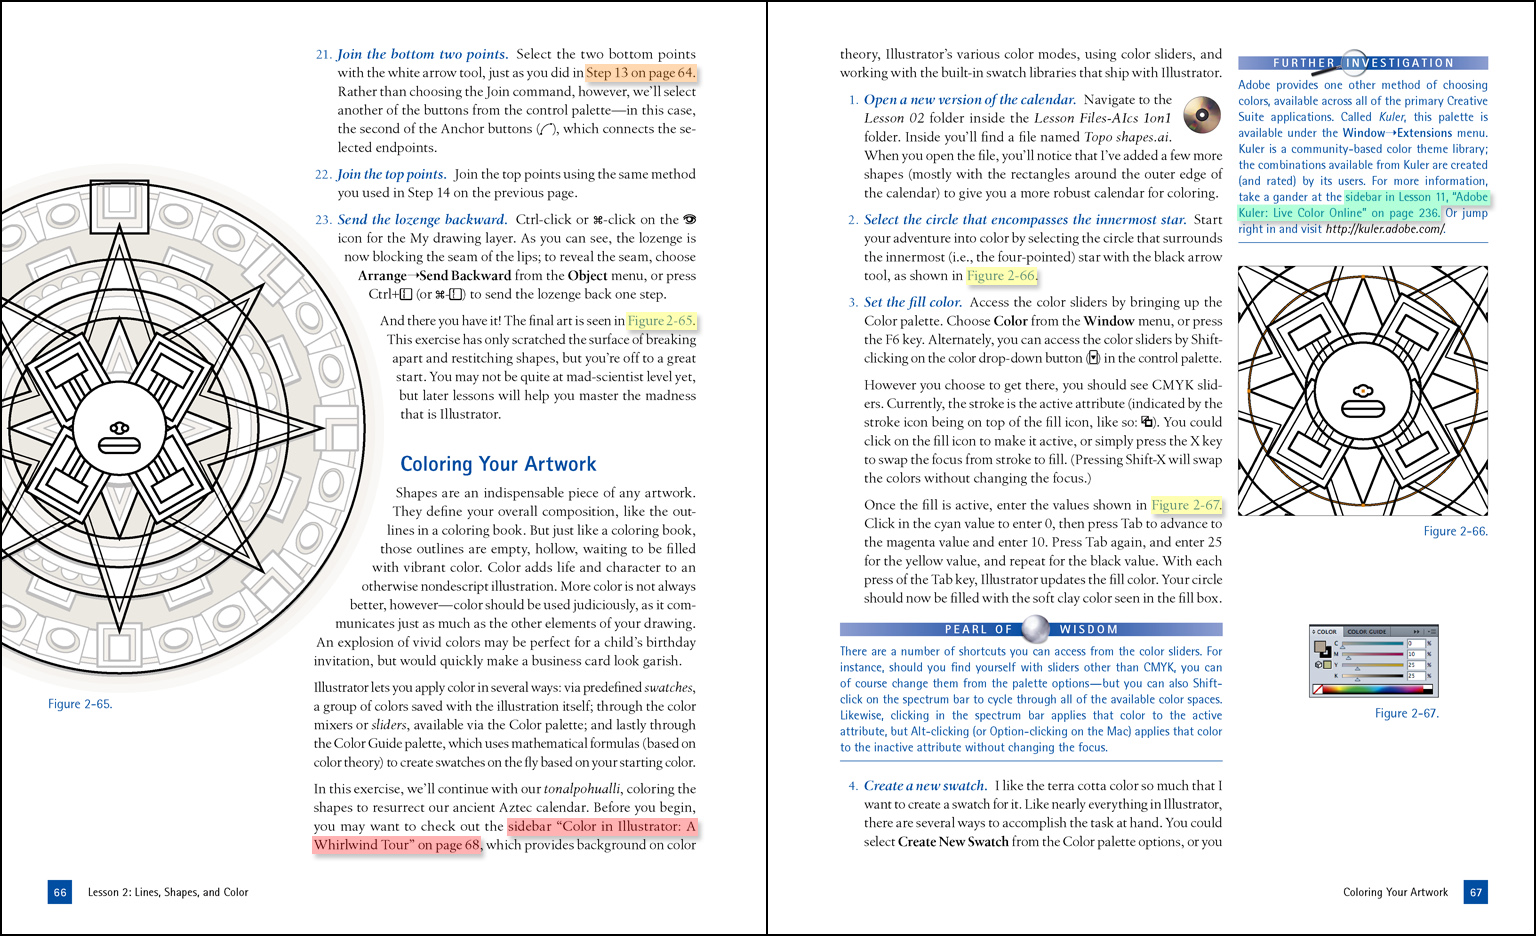 working with cross references in indesign a article